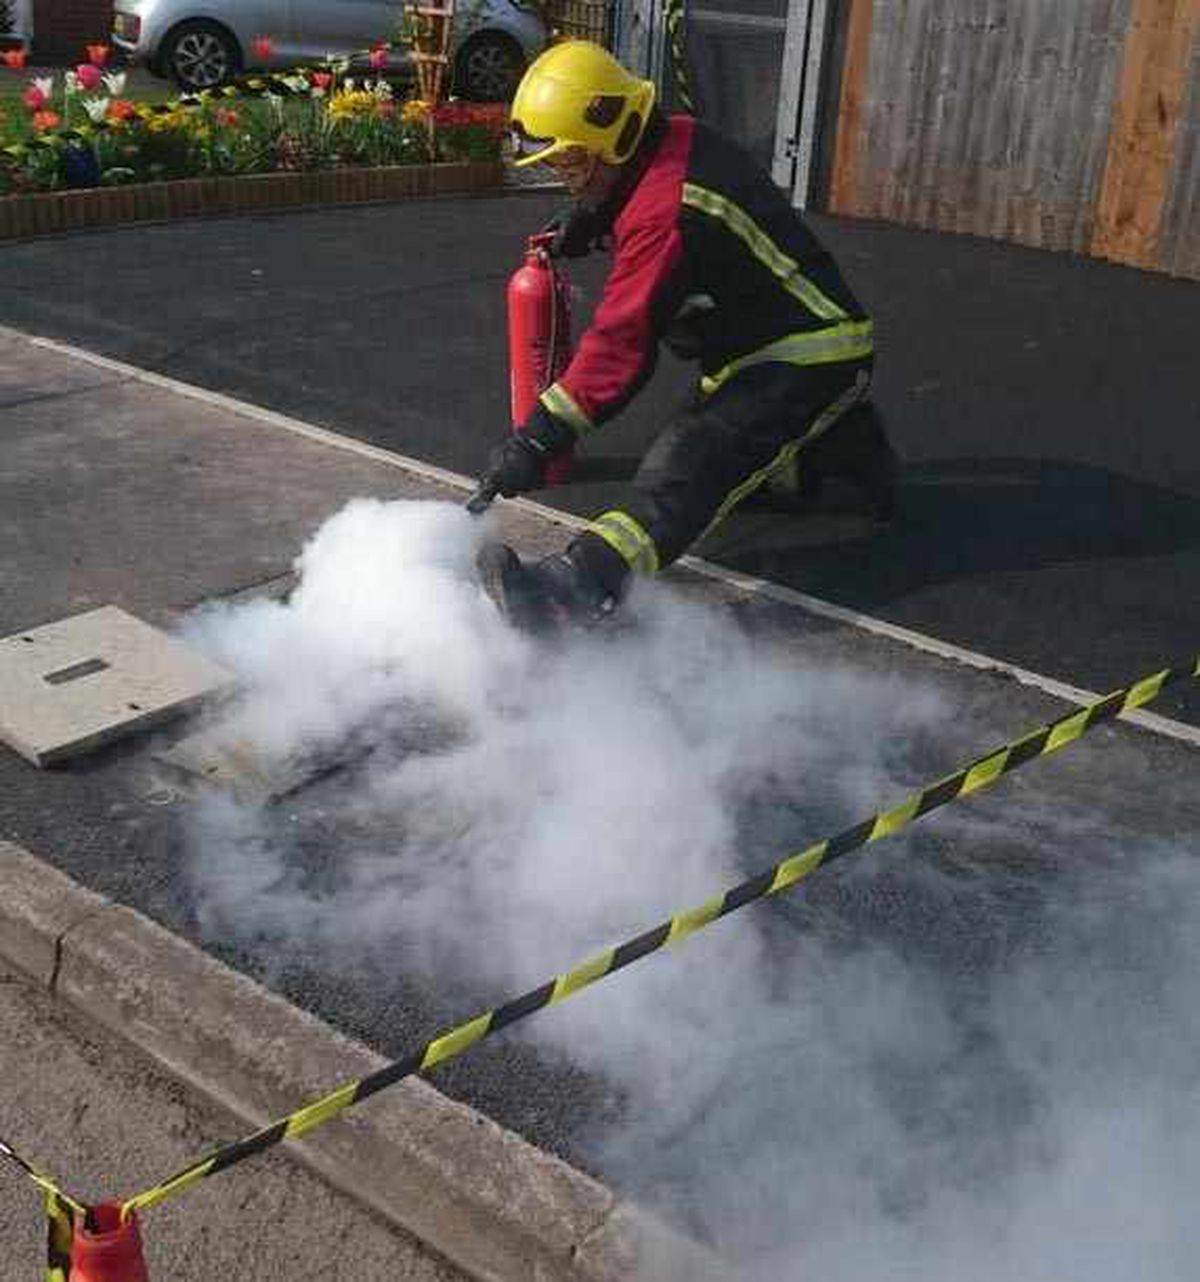 Firefighters tackle a fire coming from an underground electrical cable, in Barbrook Drive, Amblecote, picture: Stourbridge Fire Station